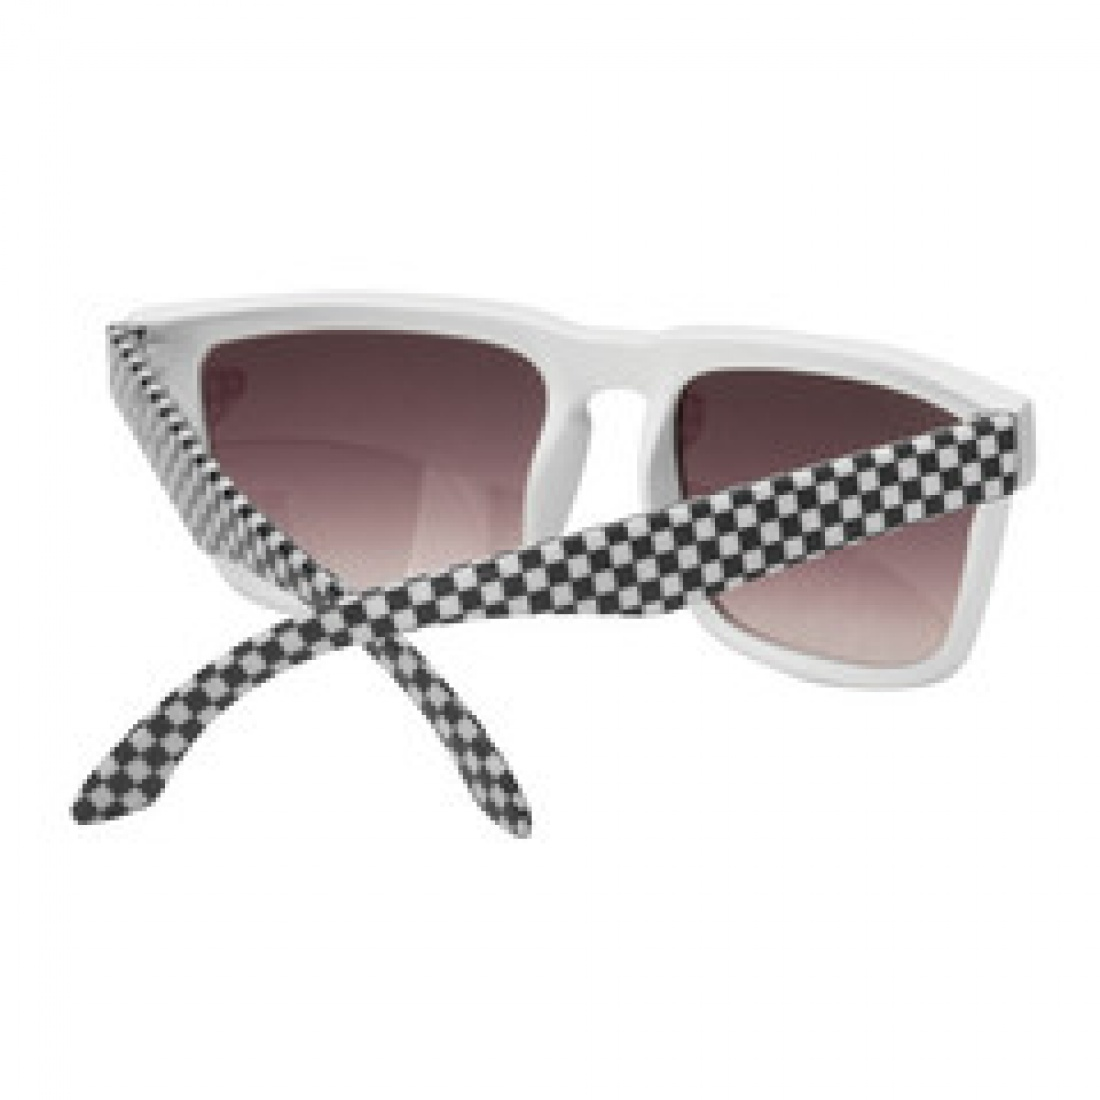 IND-Pattern Square Sunglasses Wht/Blk Checker OS Unisex